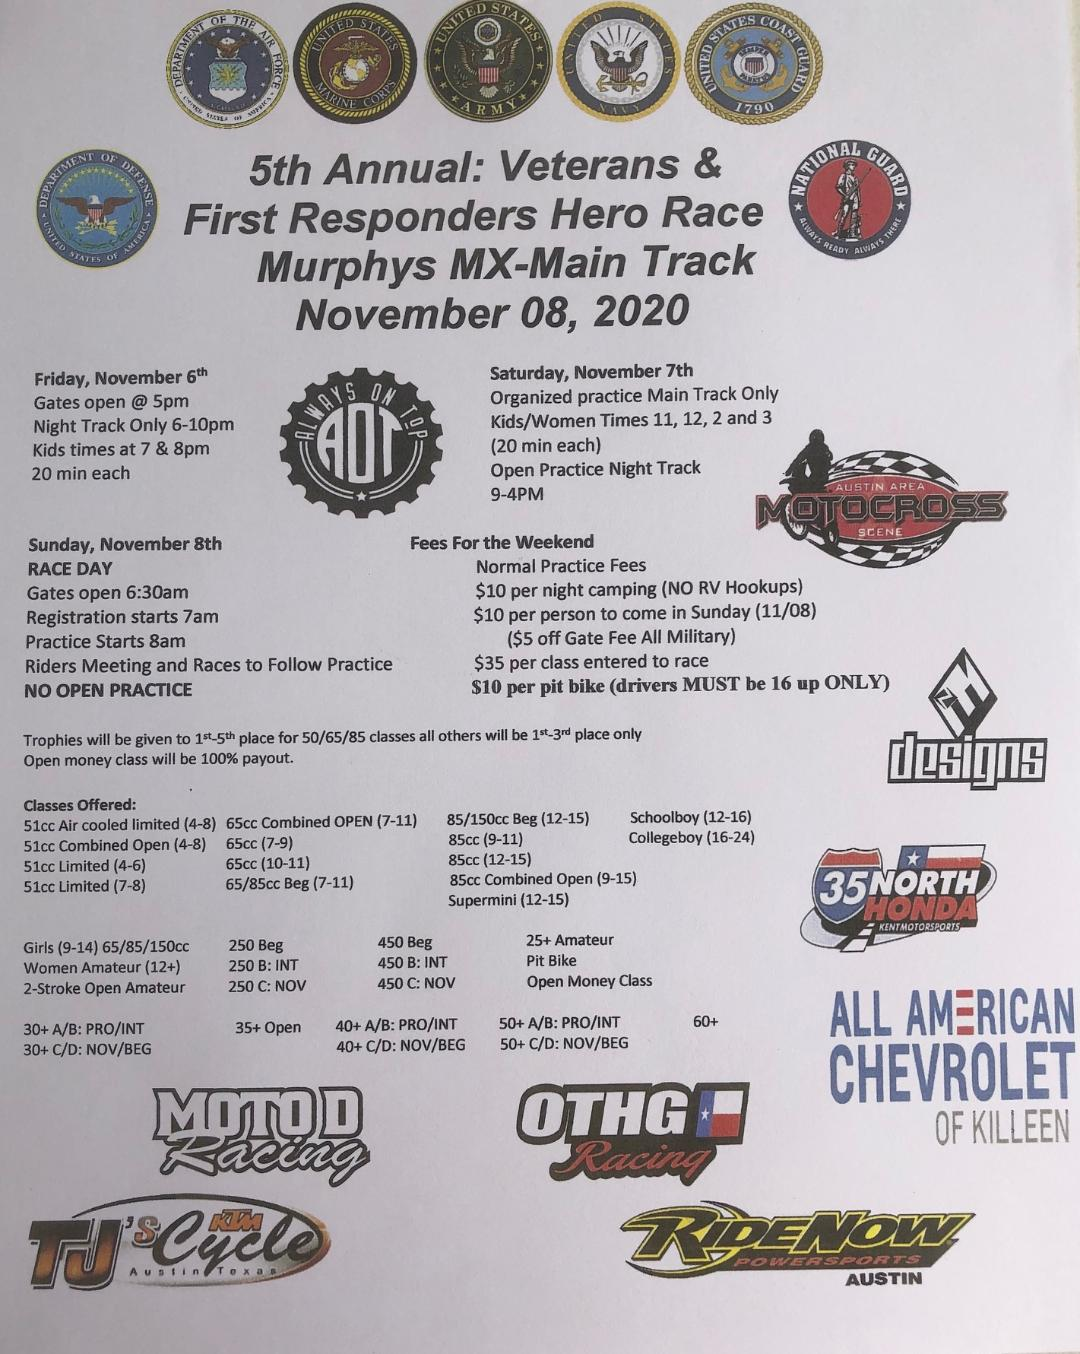 5th Annual Veterans and First Responders